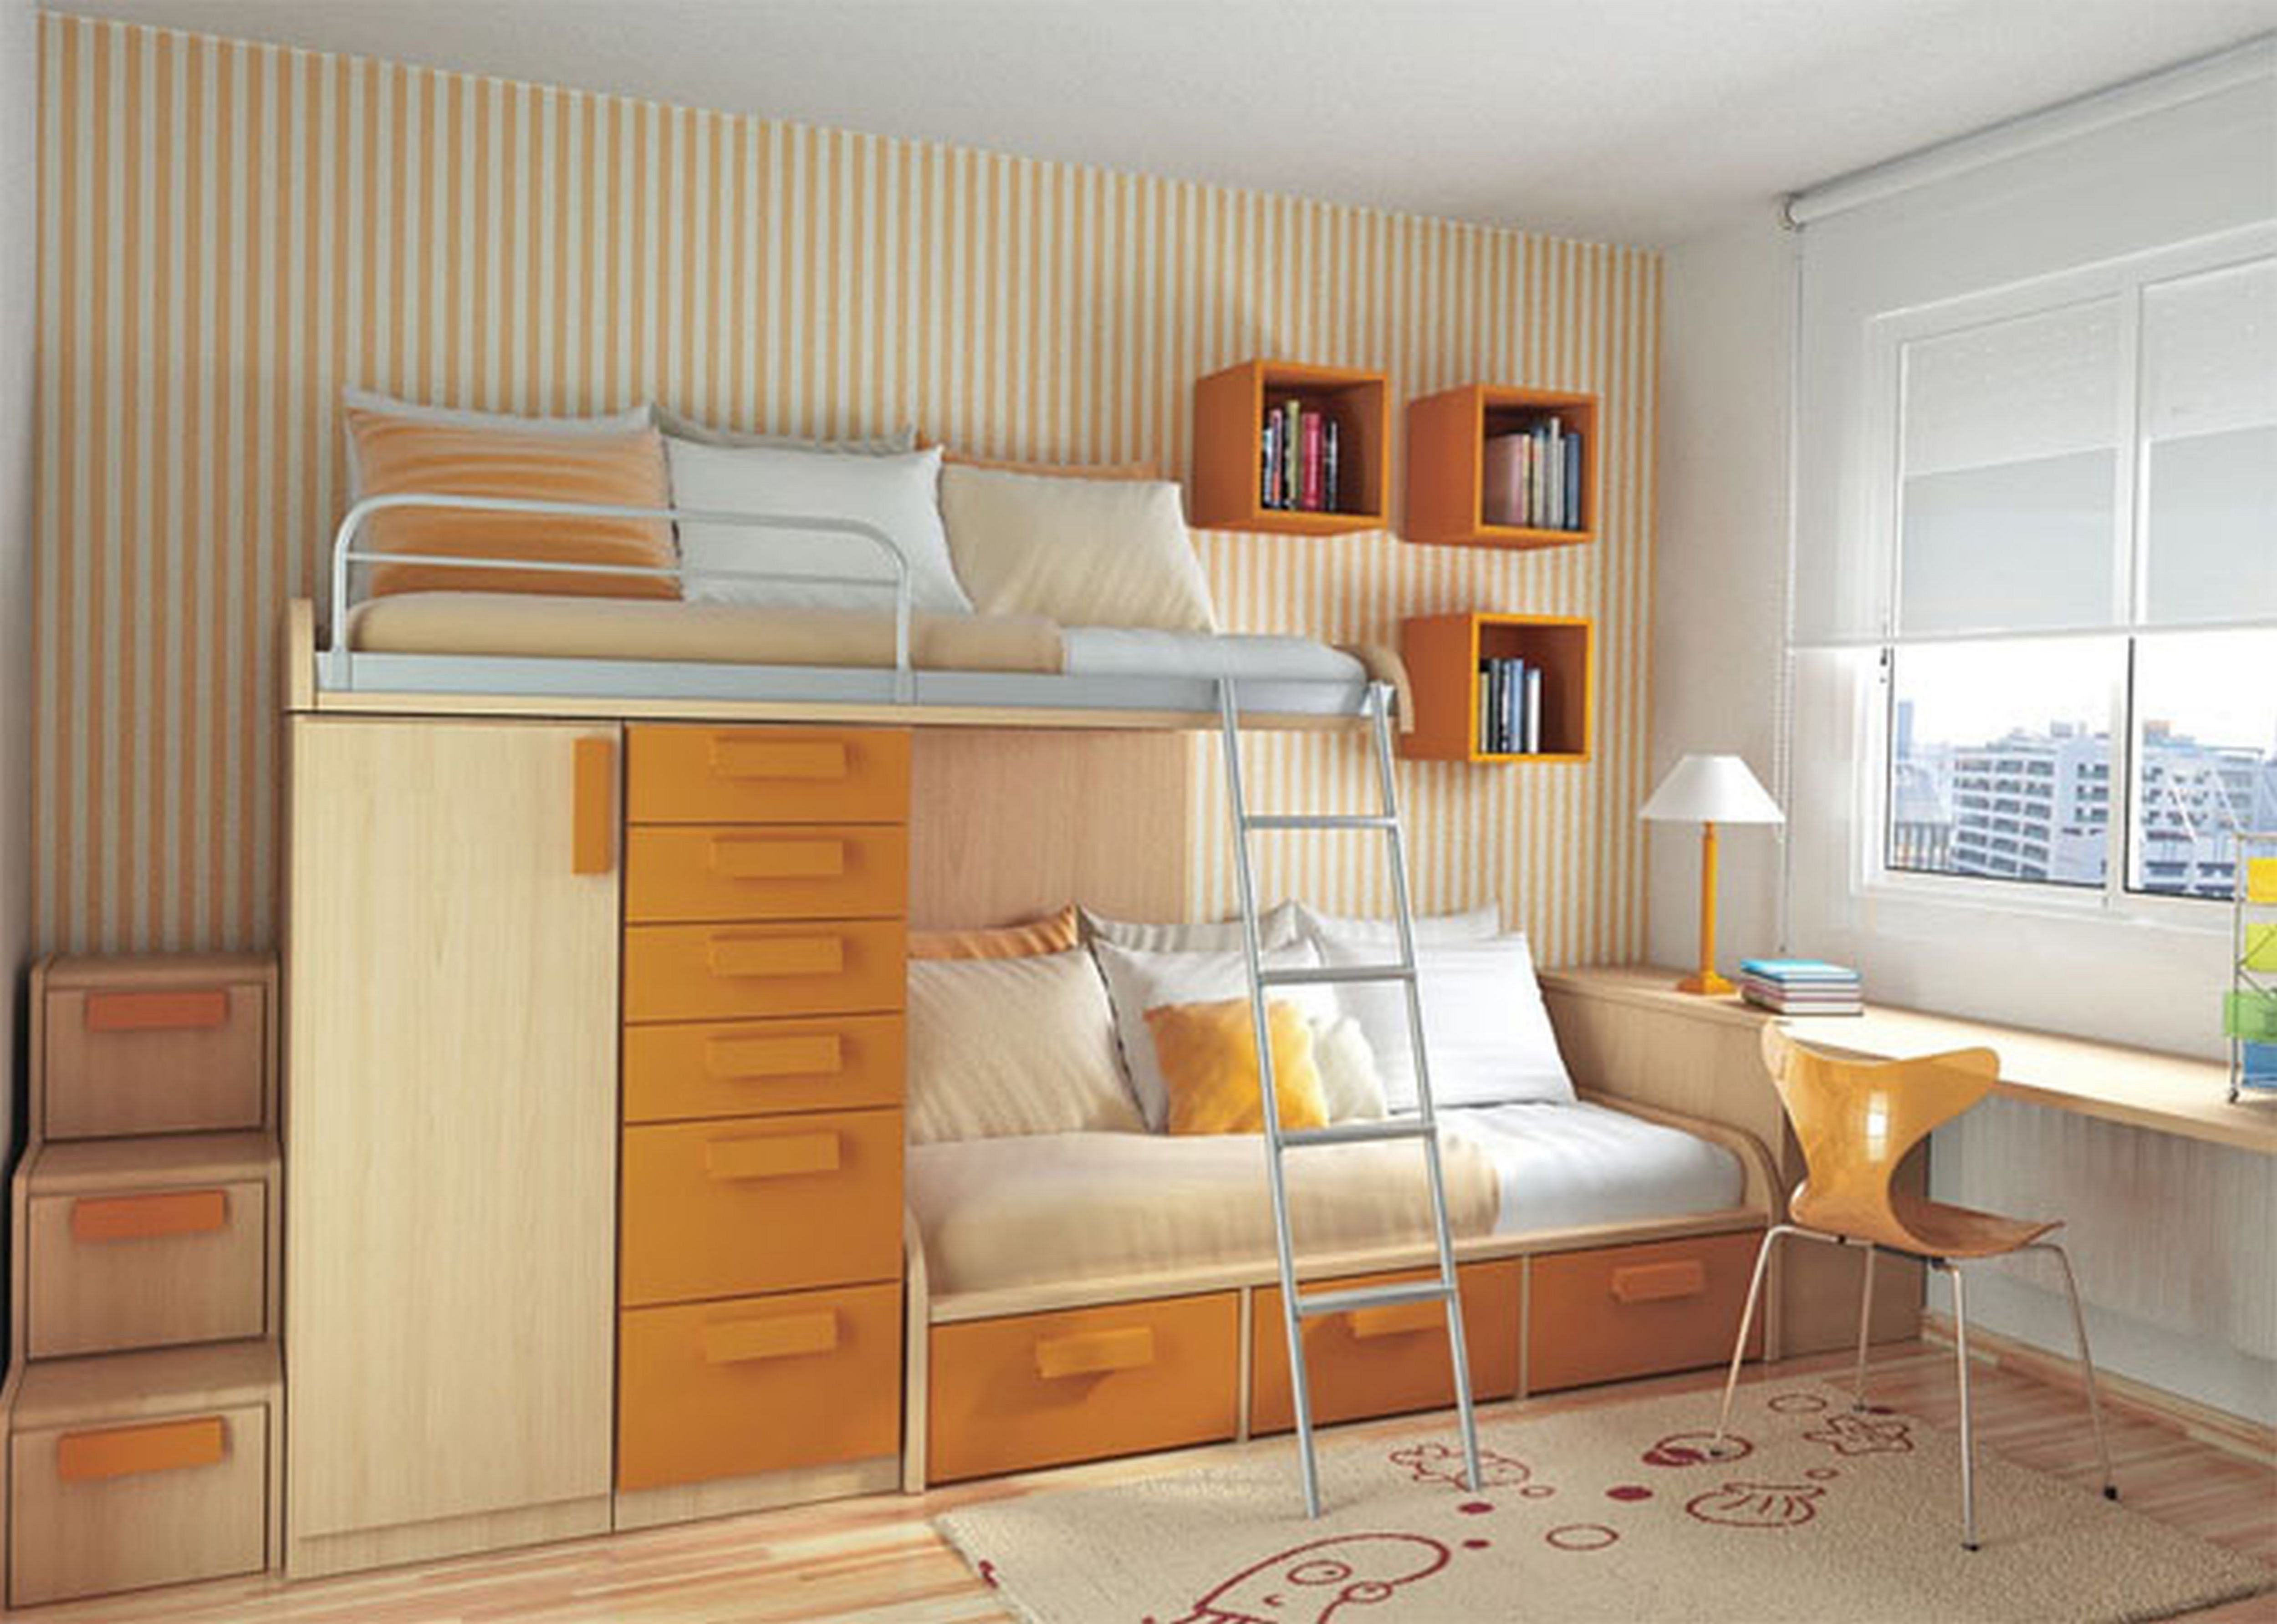 Small Bedroom Storage Ideas Fresh 35 Unbelievable Very Small Room Ideas that Cozy and Amazing